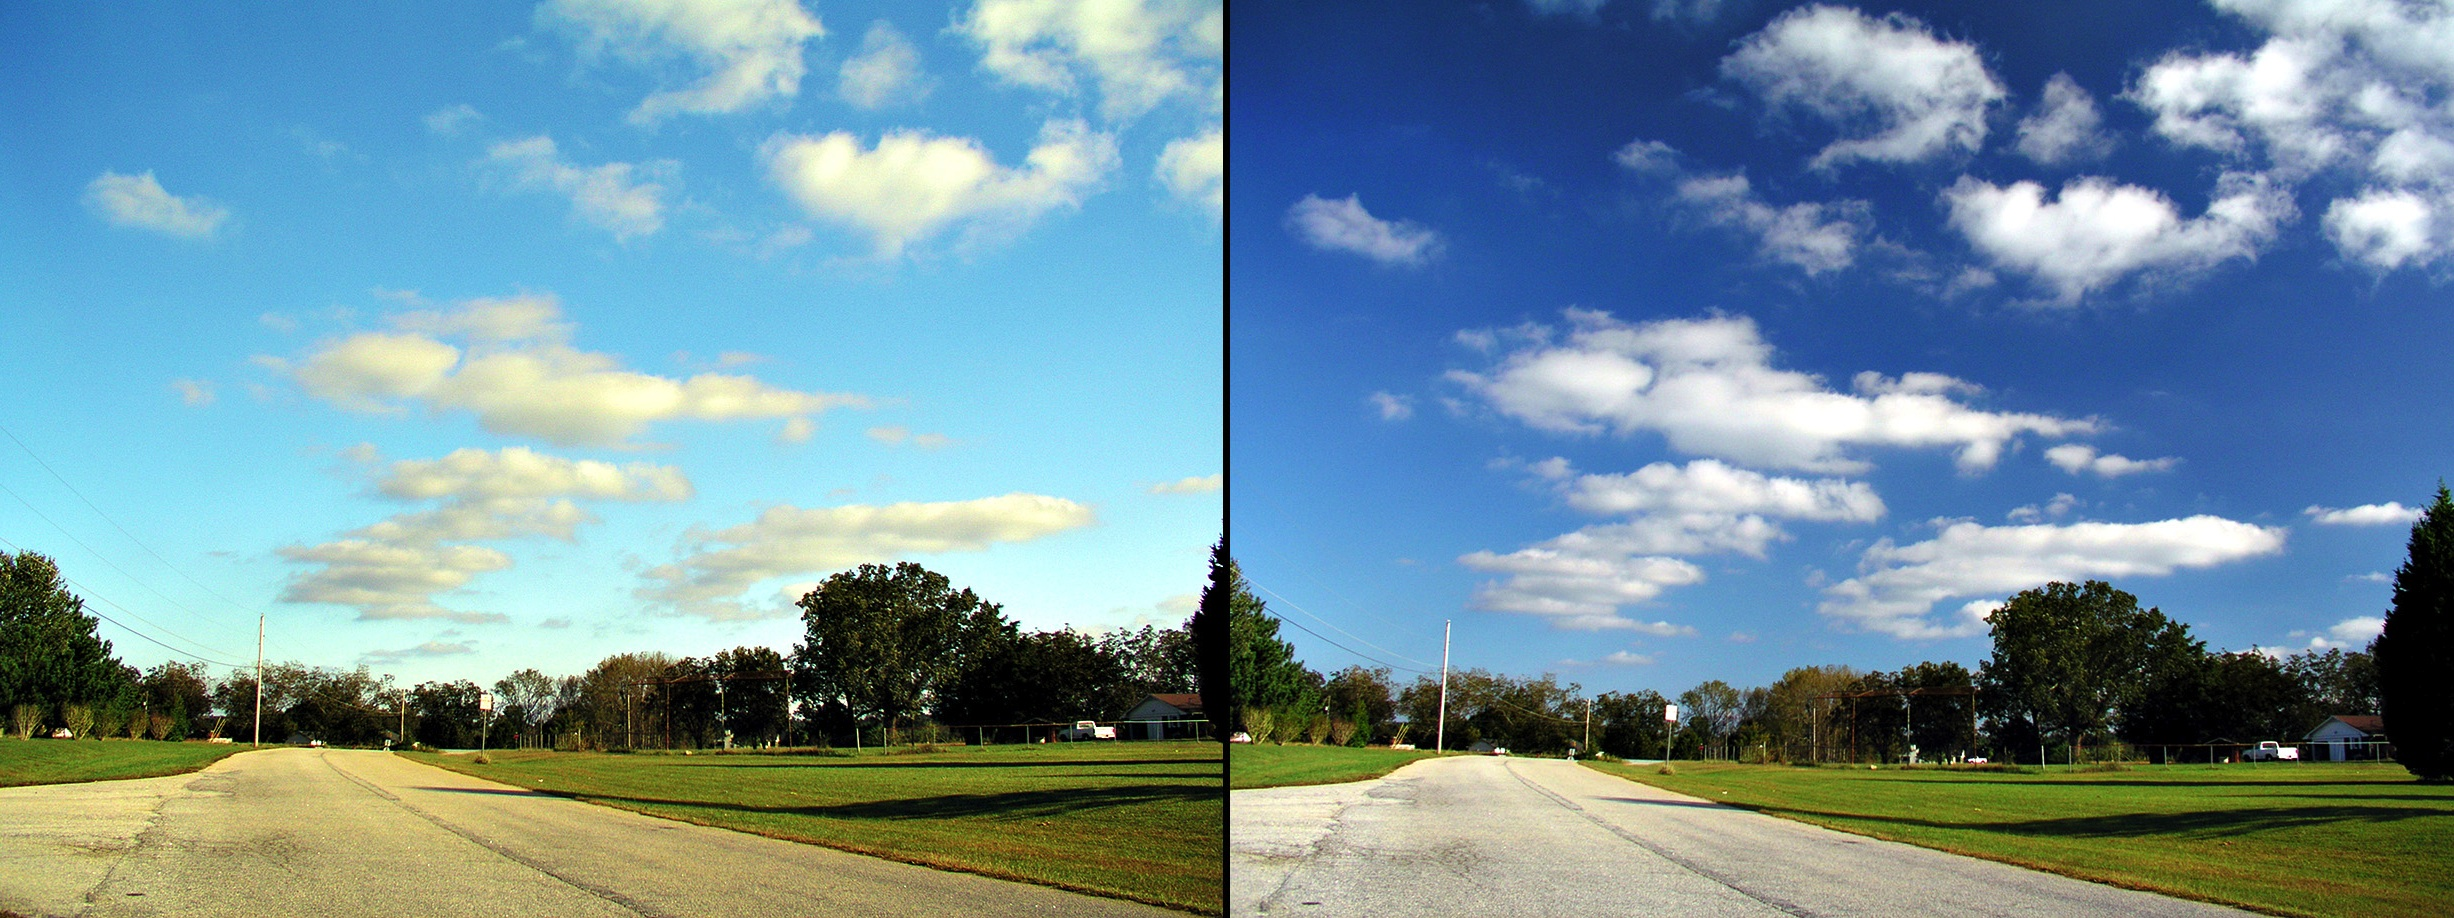 Lens filters differences